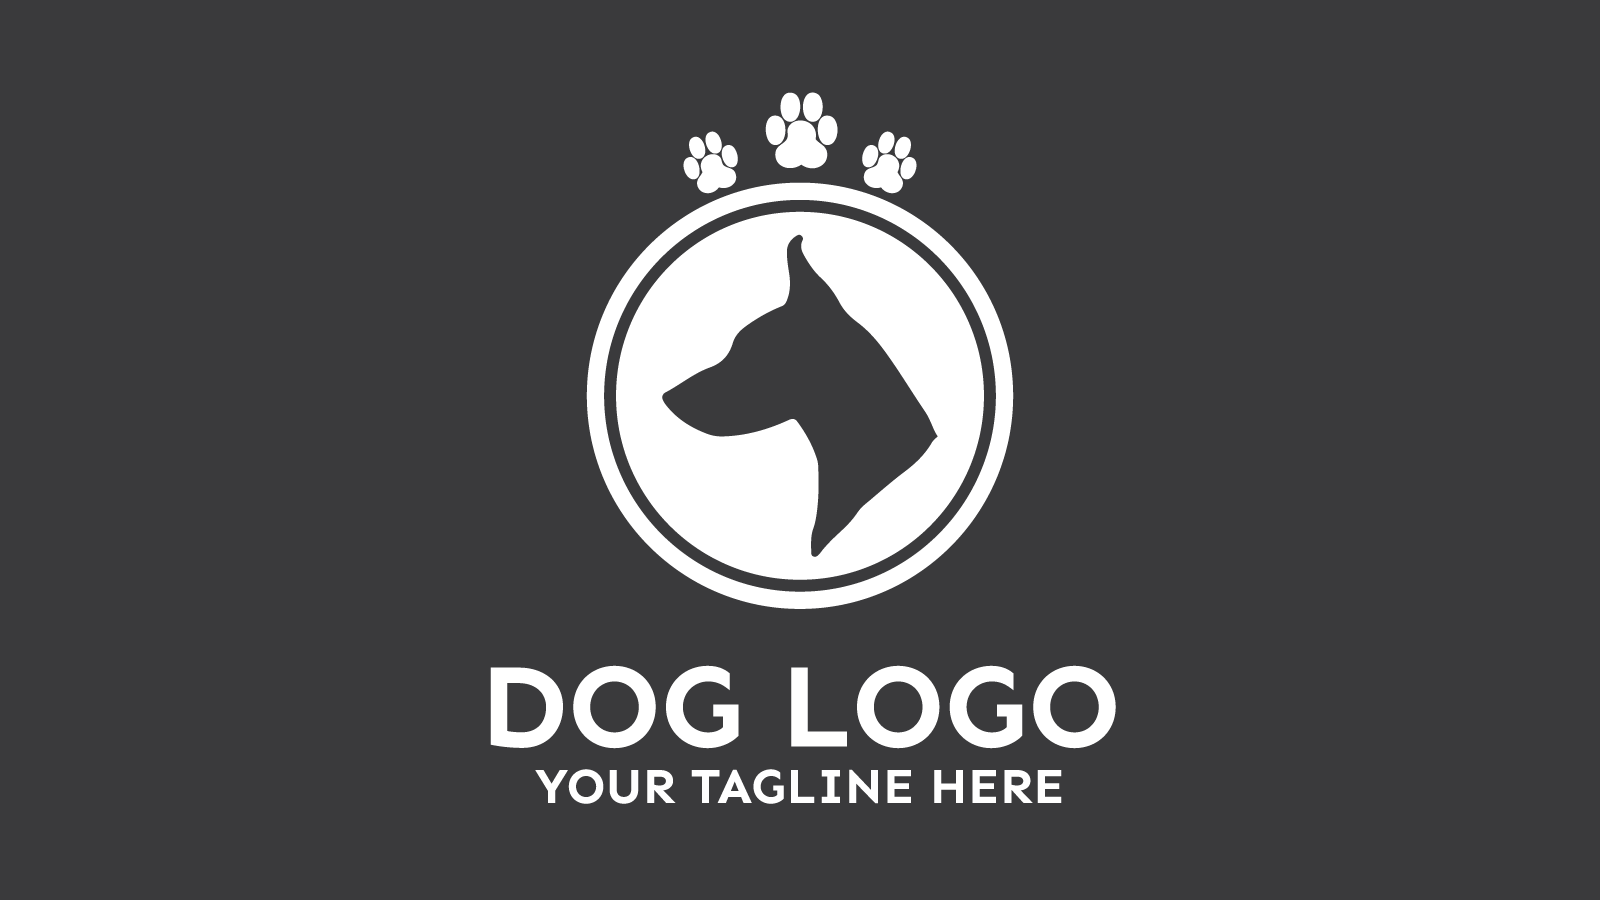 Dog free logo design zfreegraphic free vector logo downloads doglogo free business logo design template cheaphphosting Choice Image